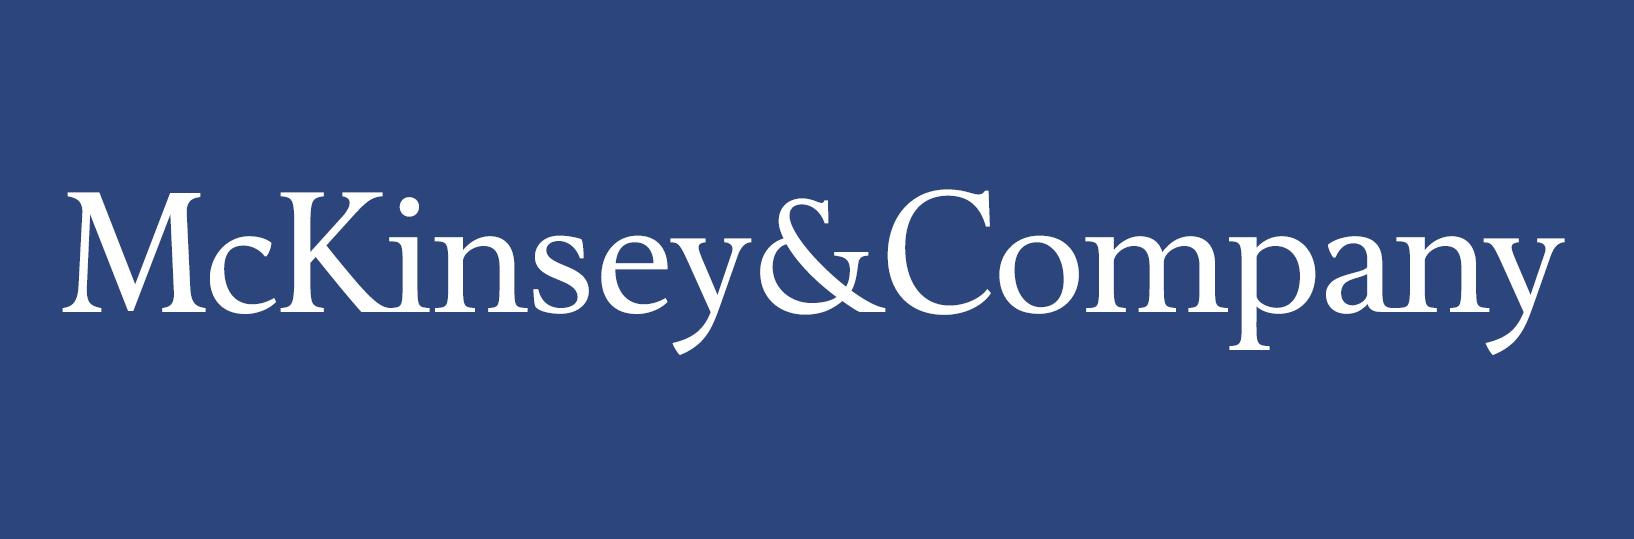 mc kinsey from indonesian view A free inside look at mckinsey & company salary trends 85 salaries for 26 jobs at mckinsey & company salaries posted anonymously by mckinsey & company employees.